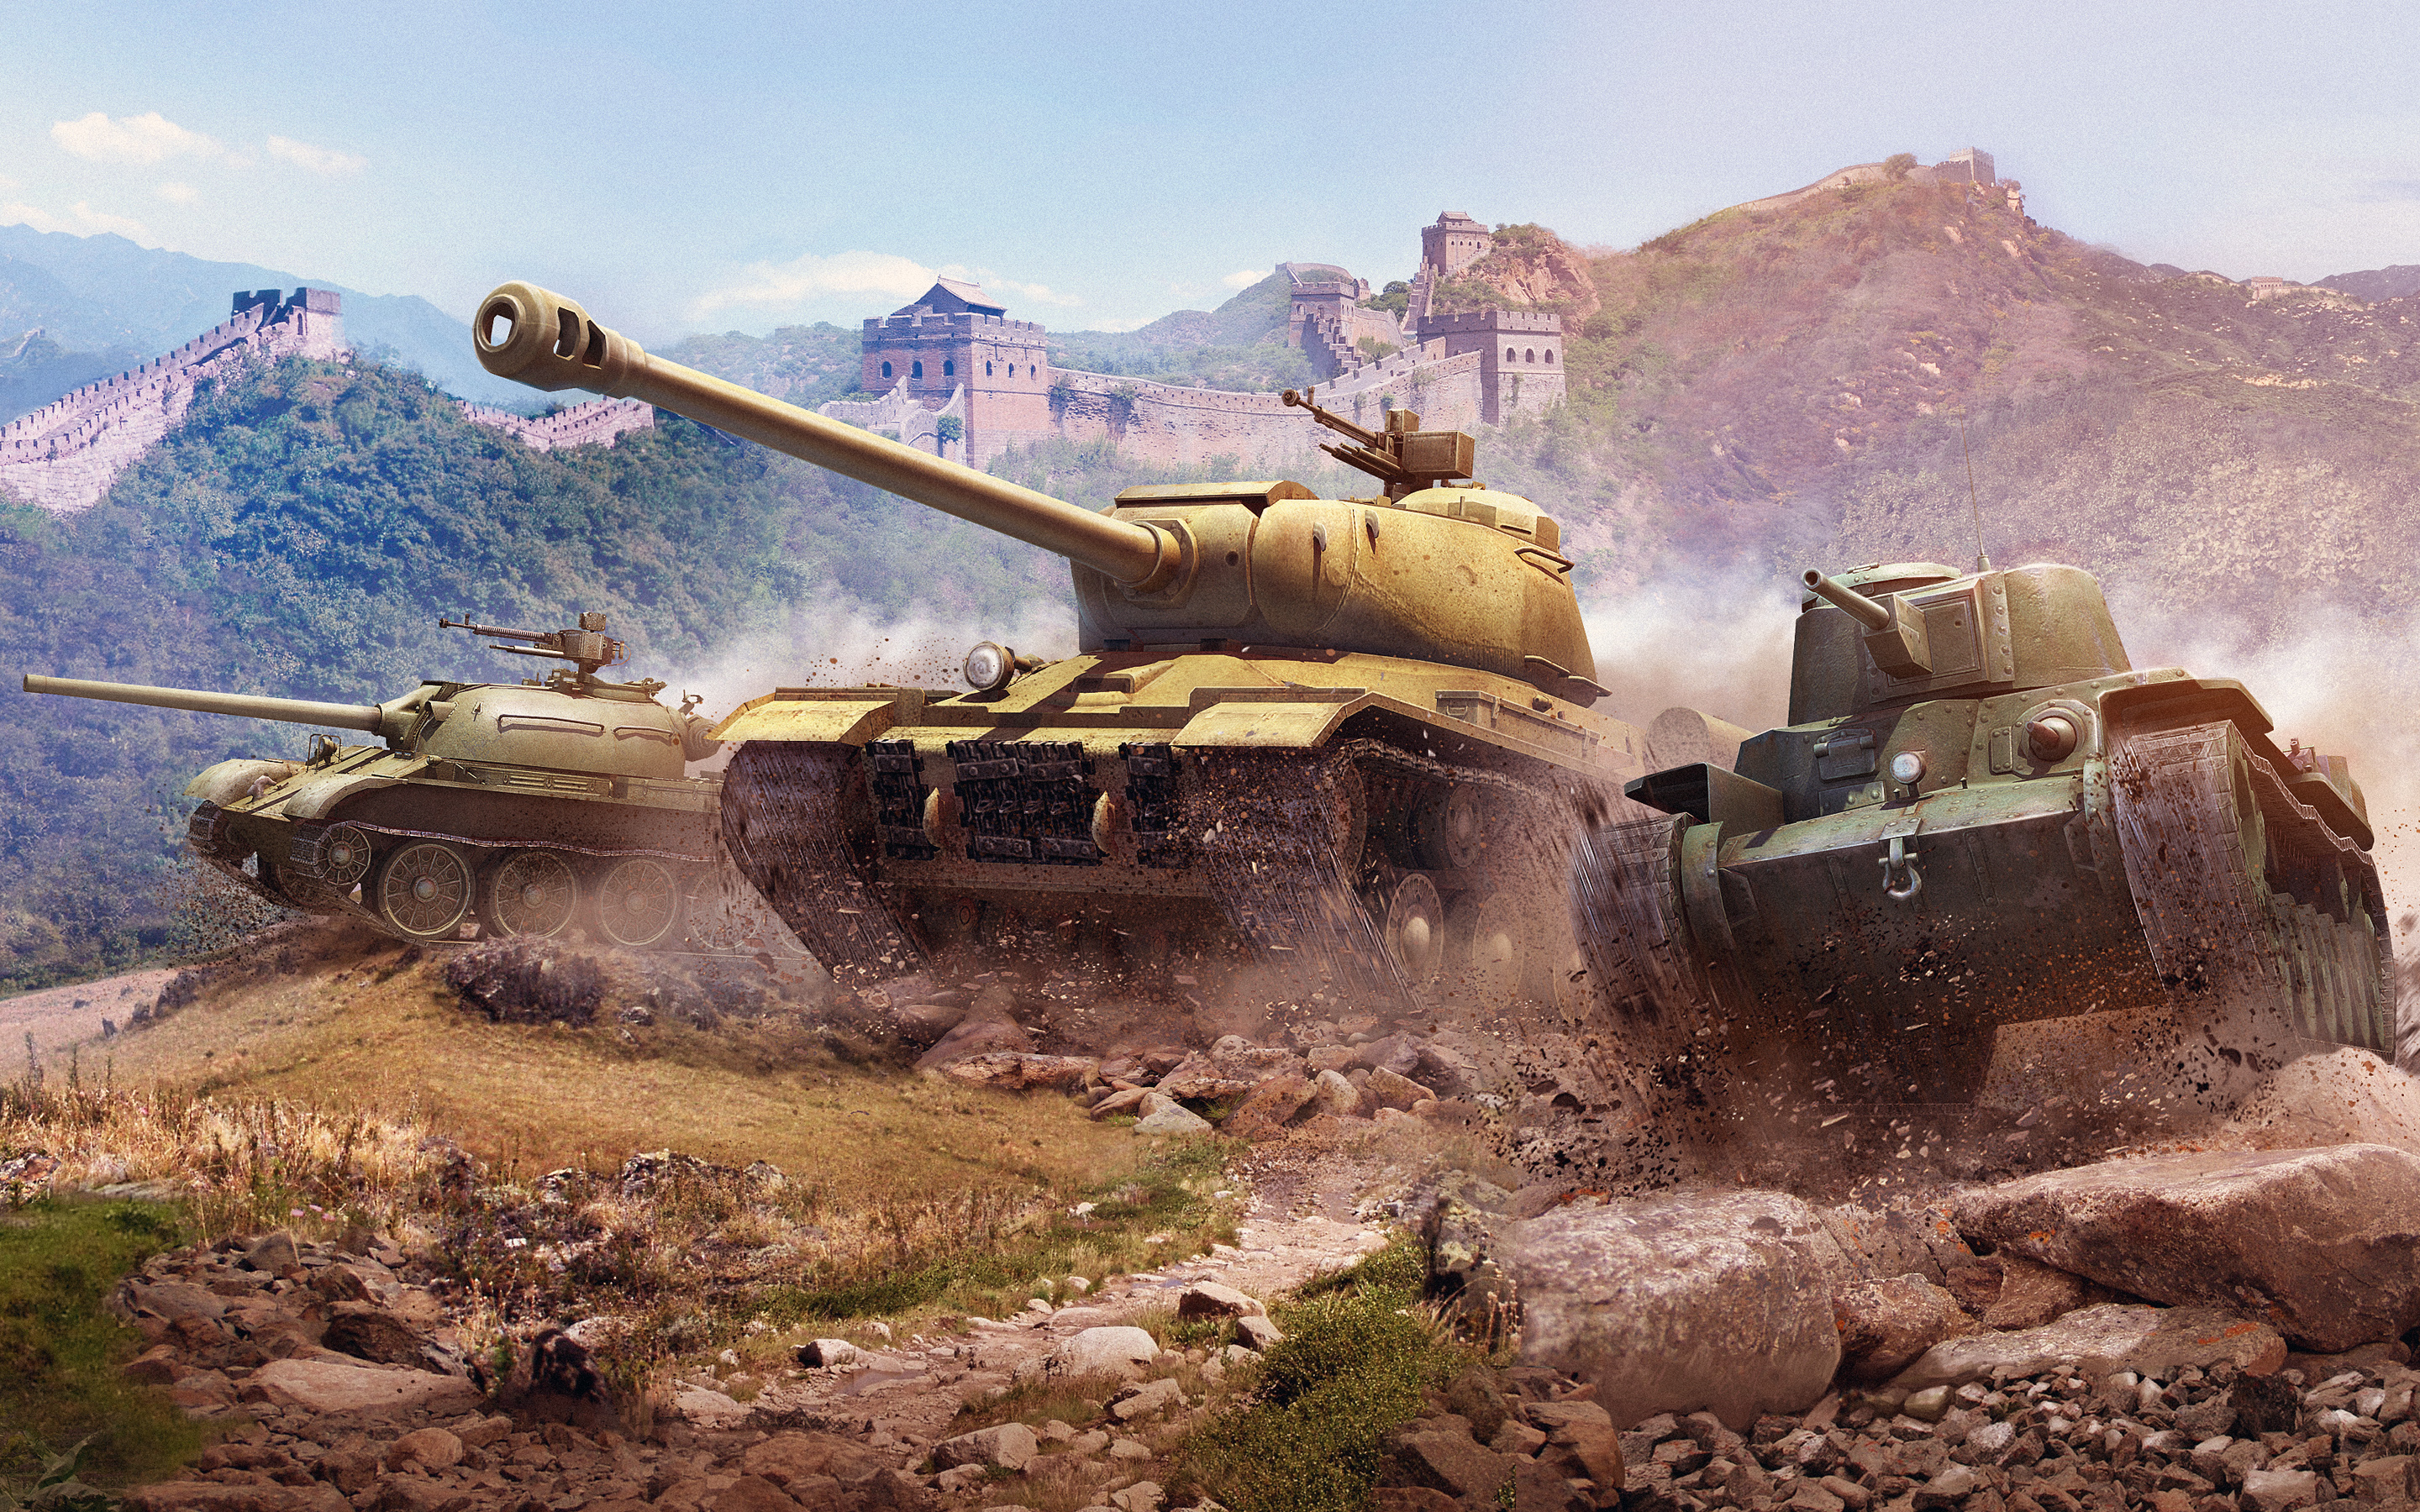 World of Tanks Chinese Tanks 806.15 Kb